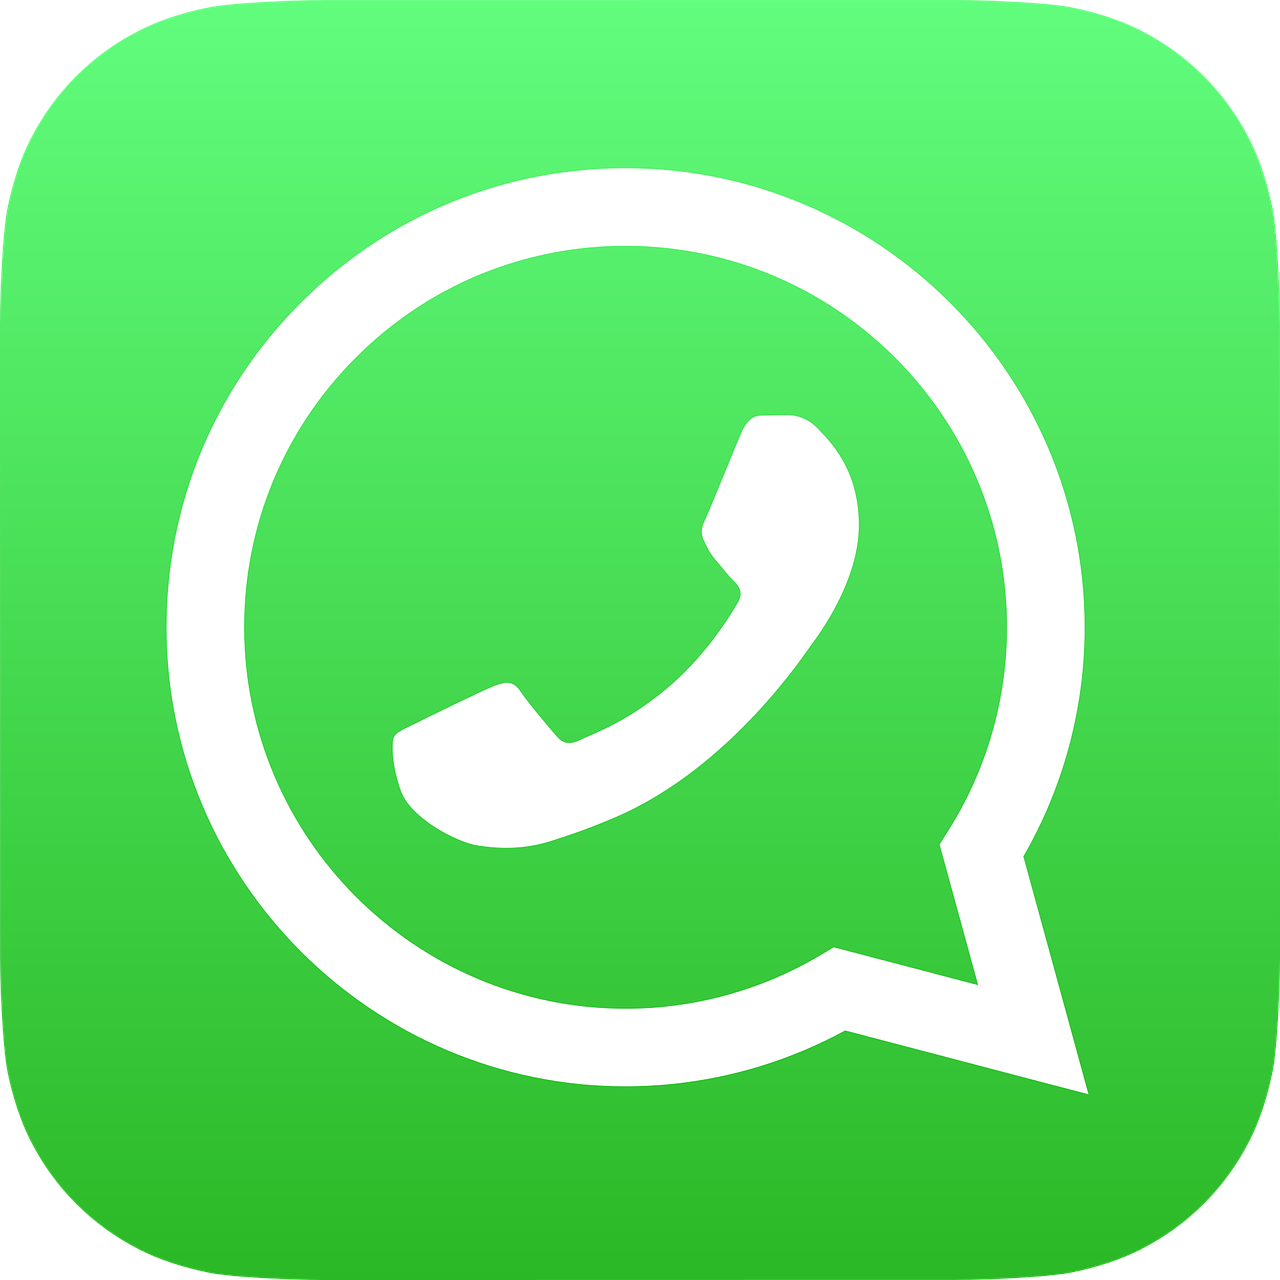 Messaging Whatsapp Apps Android Instant Free Transparent Image HQ PNG Image